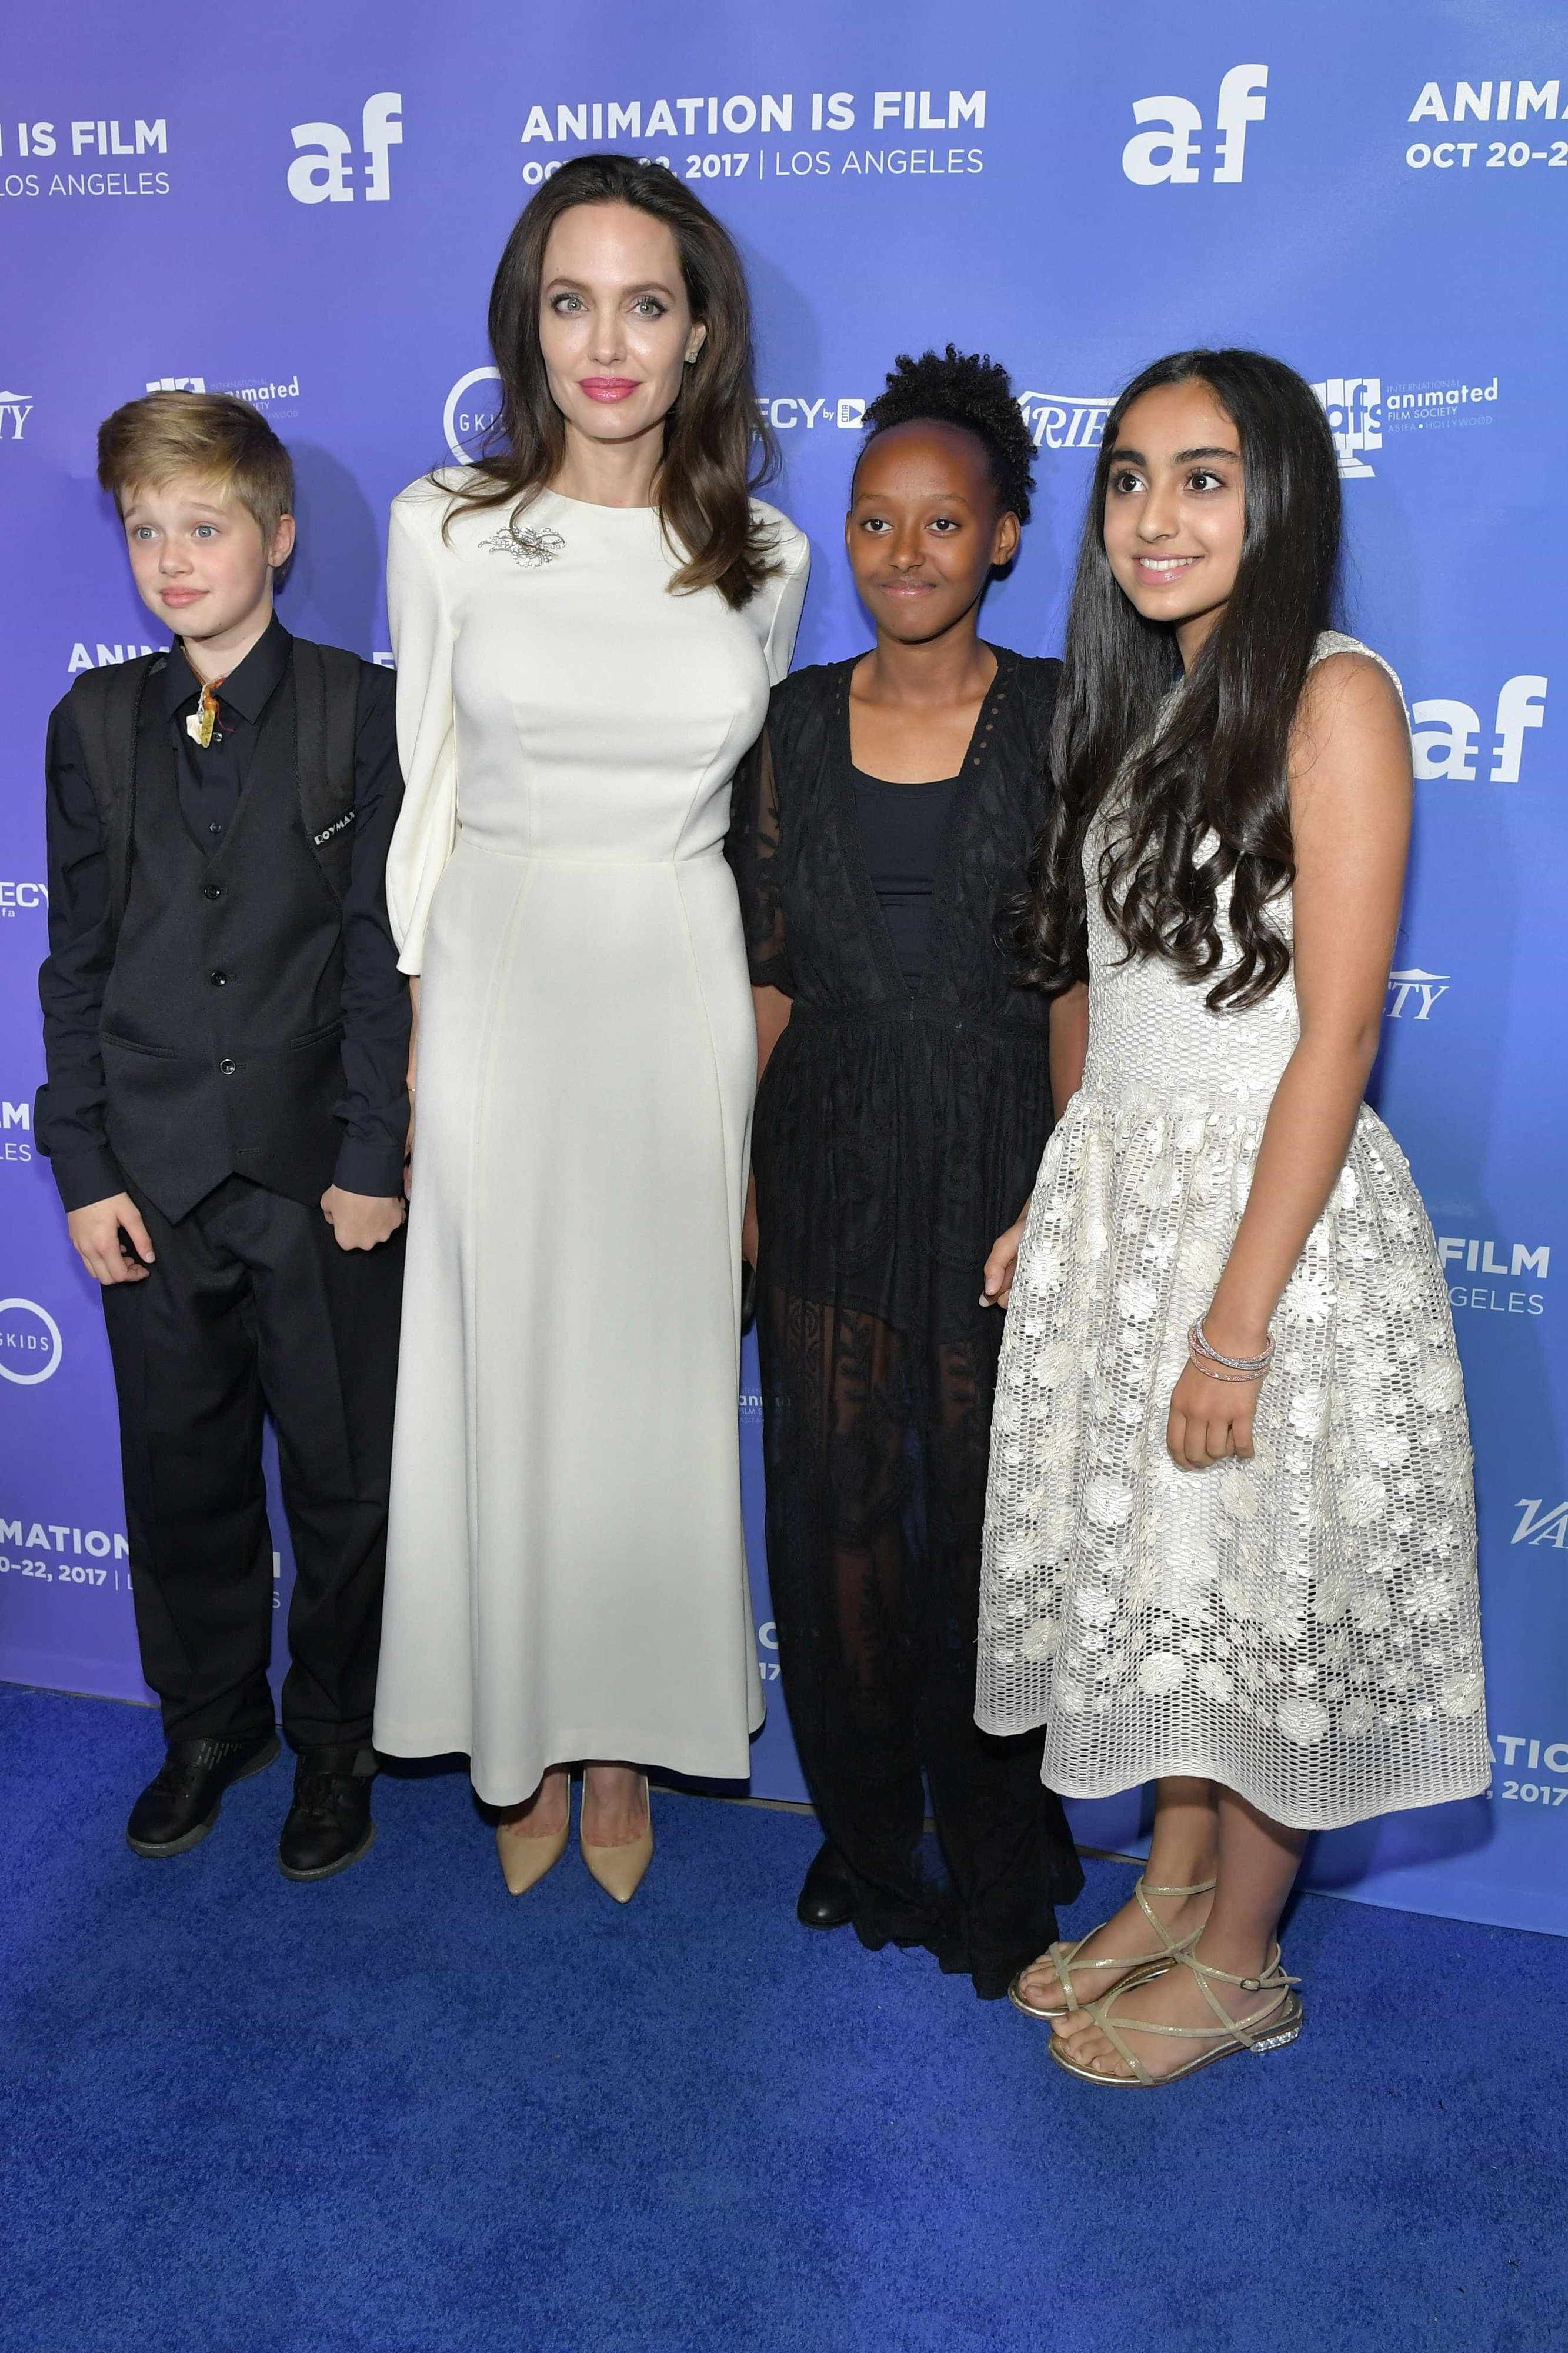 Image Source: Getty Images/Jolie with the kids